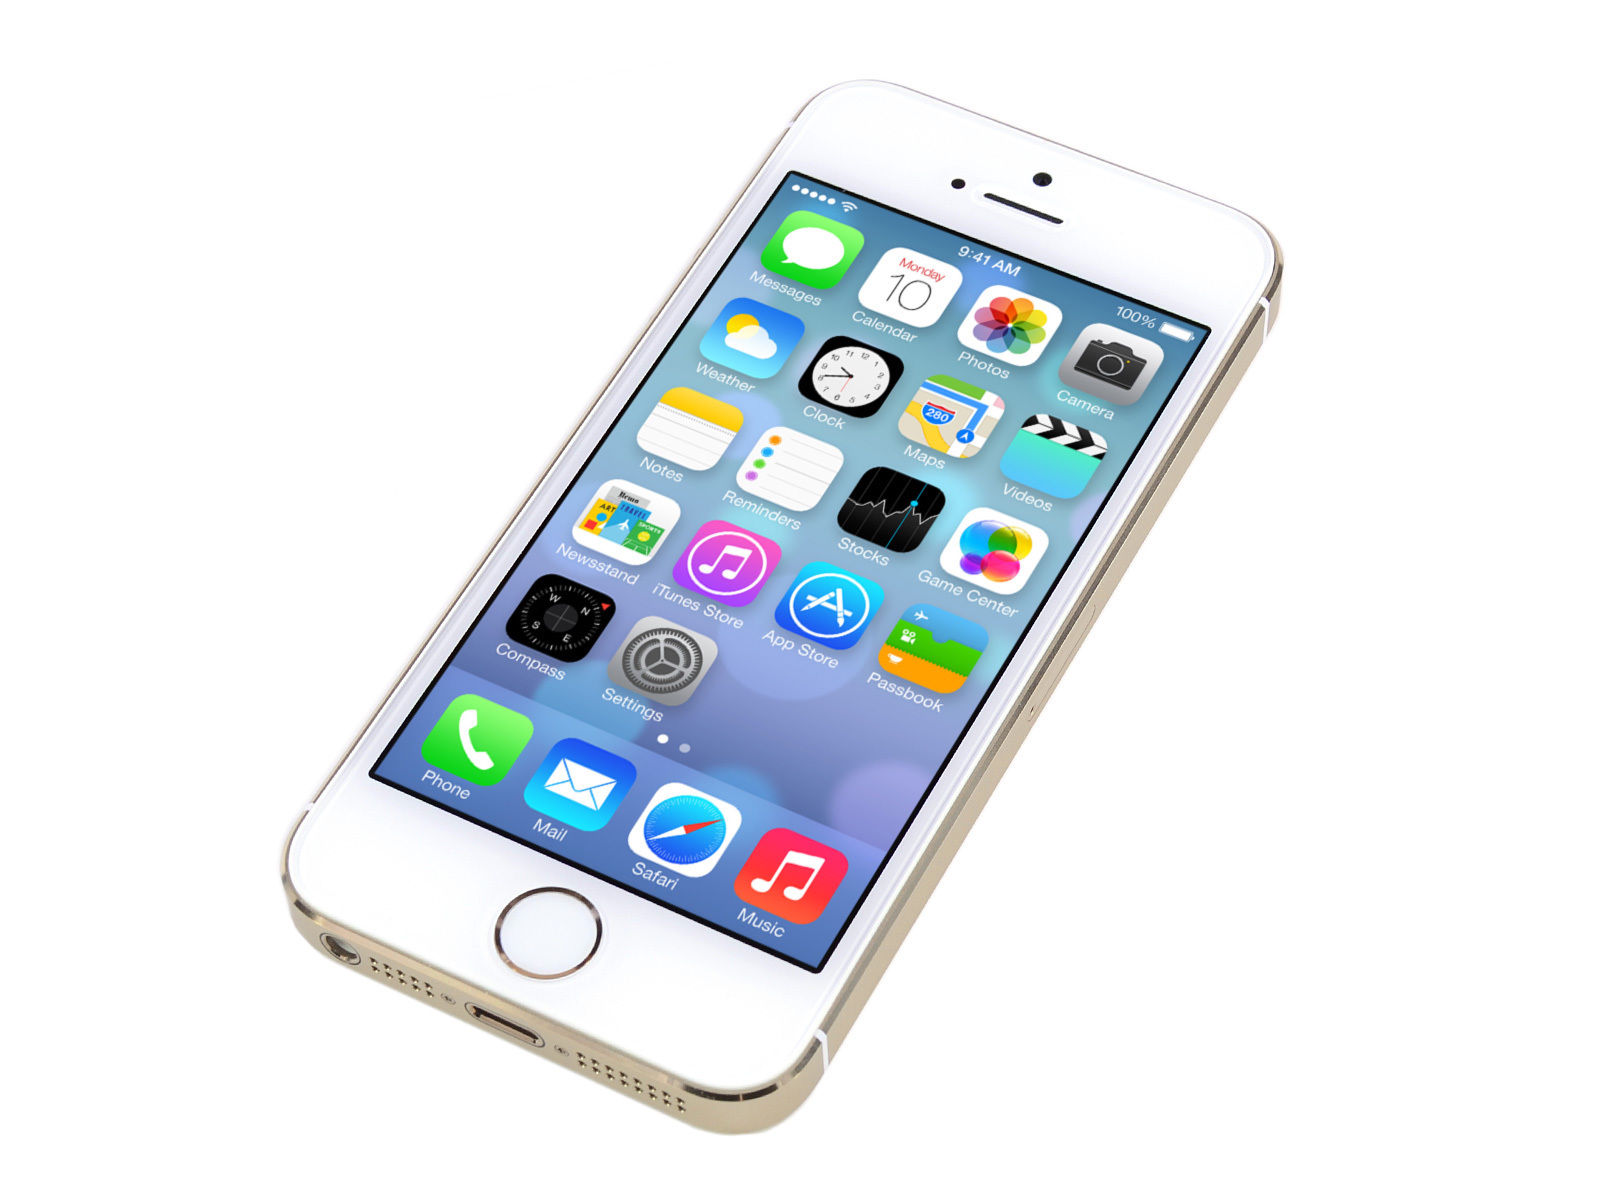 a1533 iphone 5s apple iphone 5s a1533 16gb gsm unlocked 4g lte ios 10022